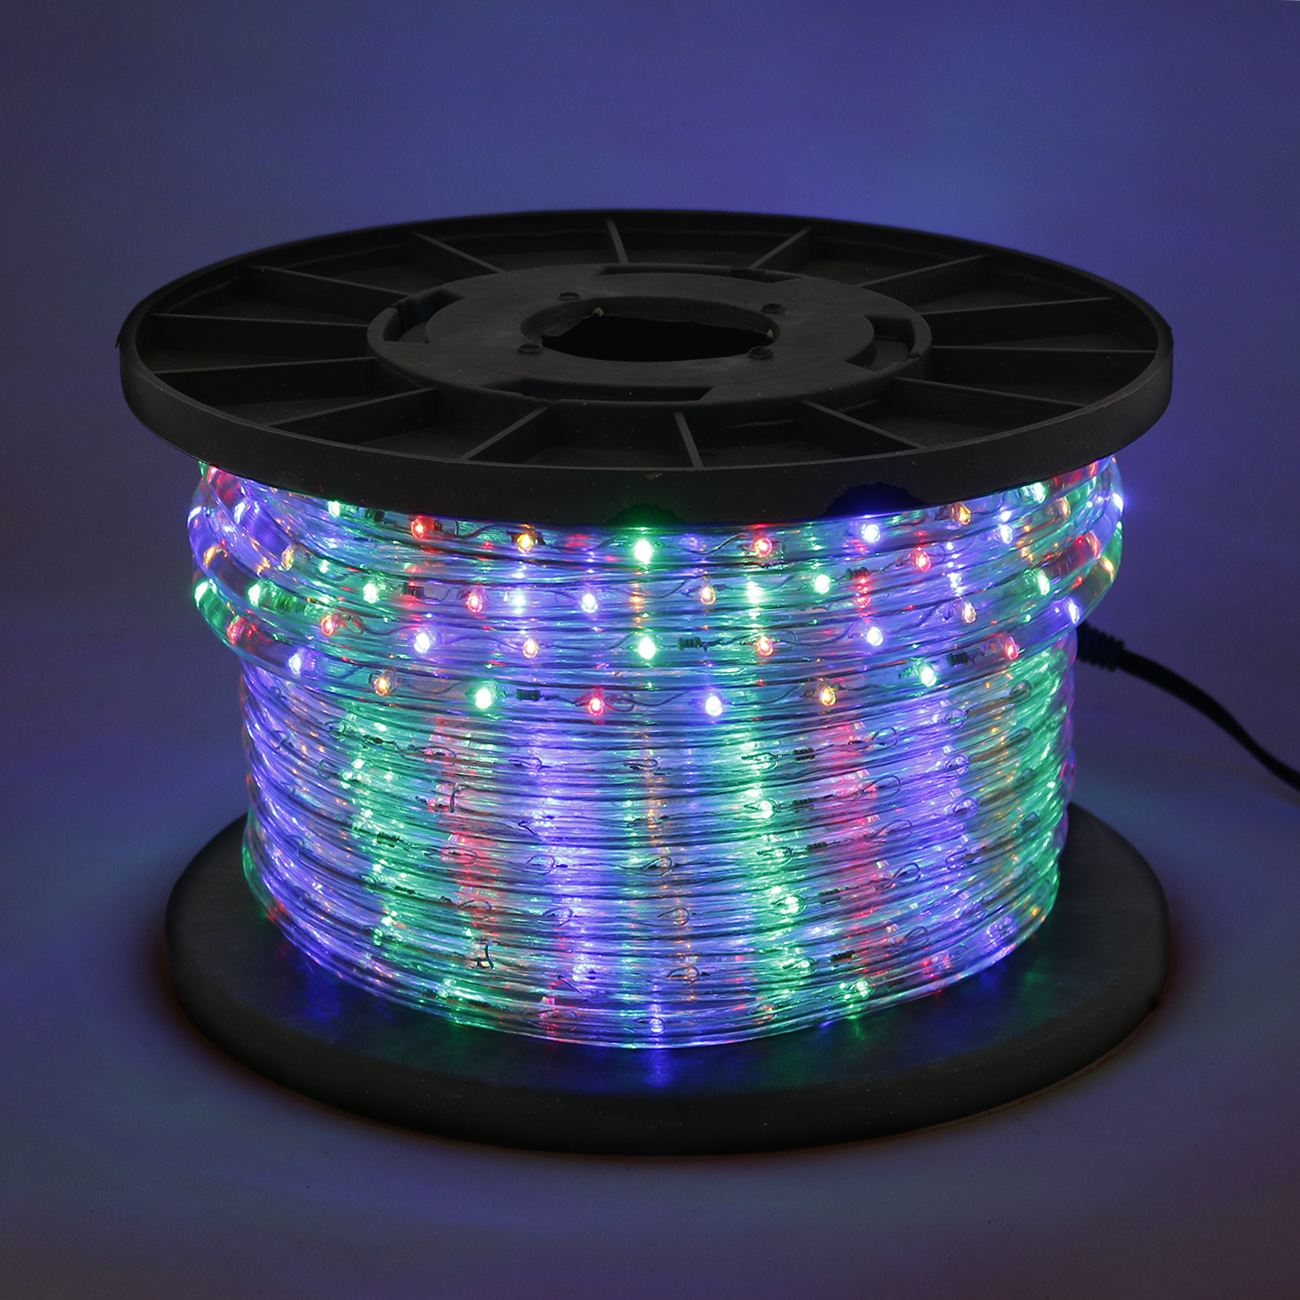 Rope Lights Sensory: Multi Color RGB 100' LED Rope 110V 2 Wire Flexible DIY